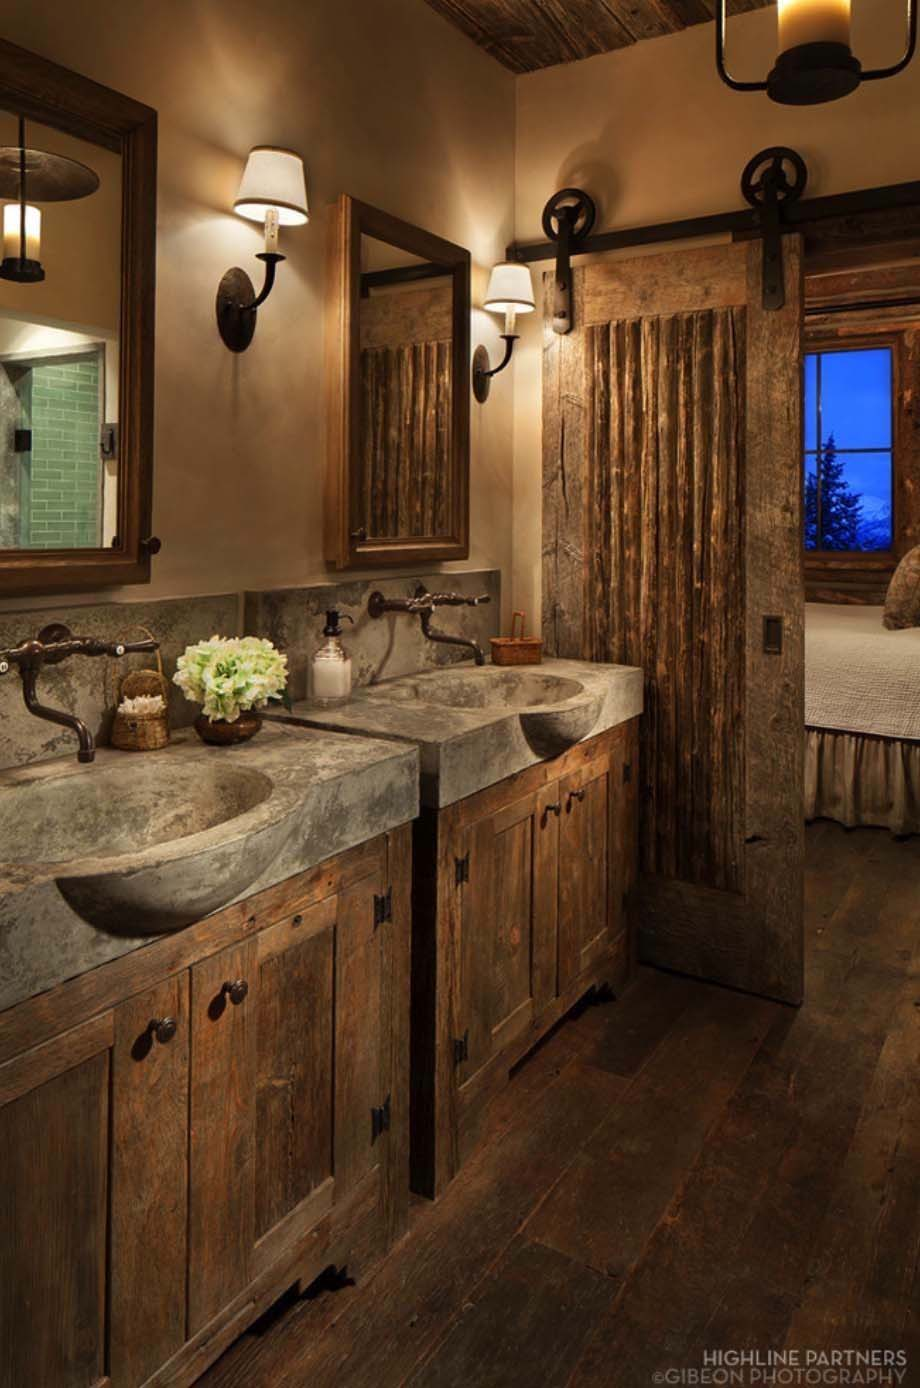 17 inspiring rustic bathroom decor ideas for cozy home for Home bathroom ideas